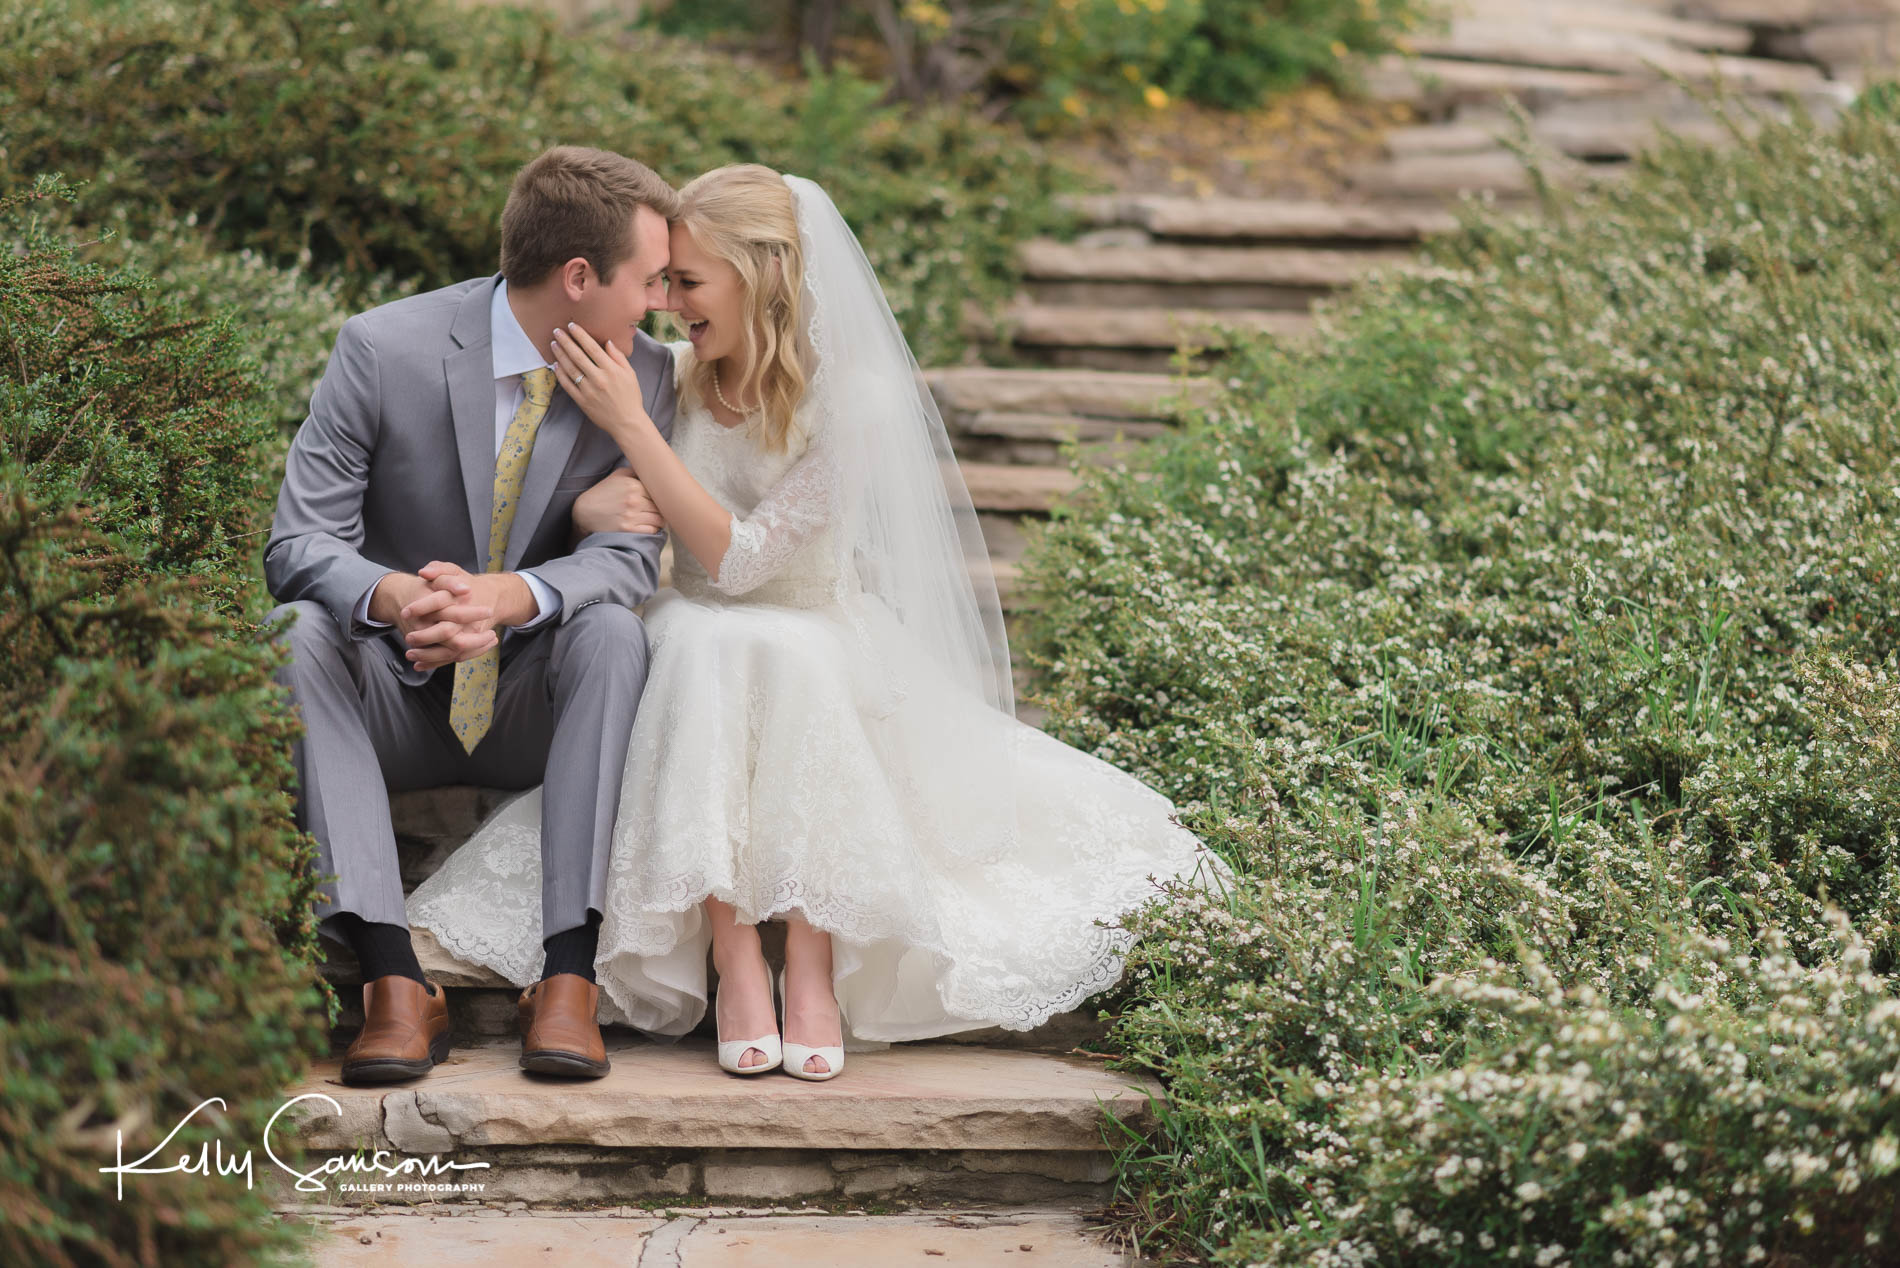 A bride and groom sitting on steps for bridal photography at Memory Grove.